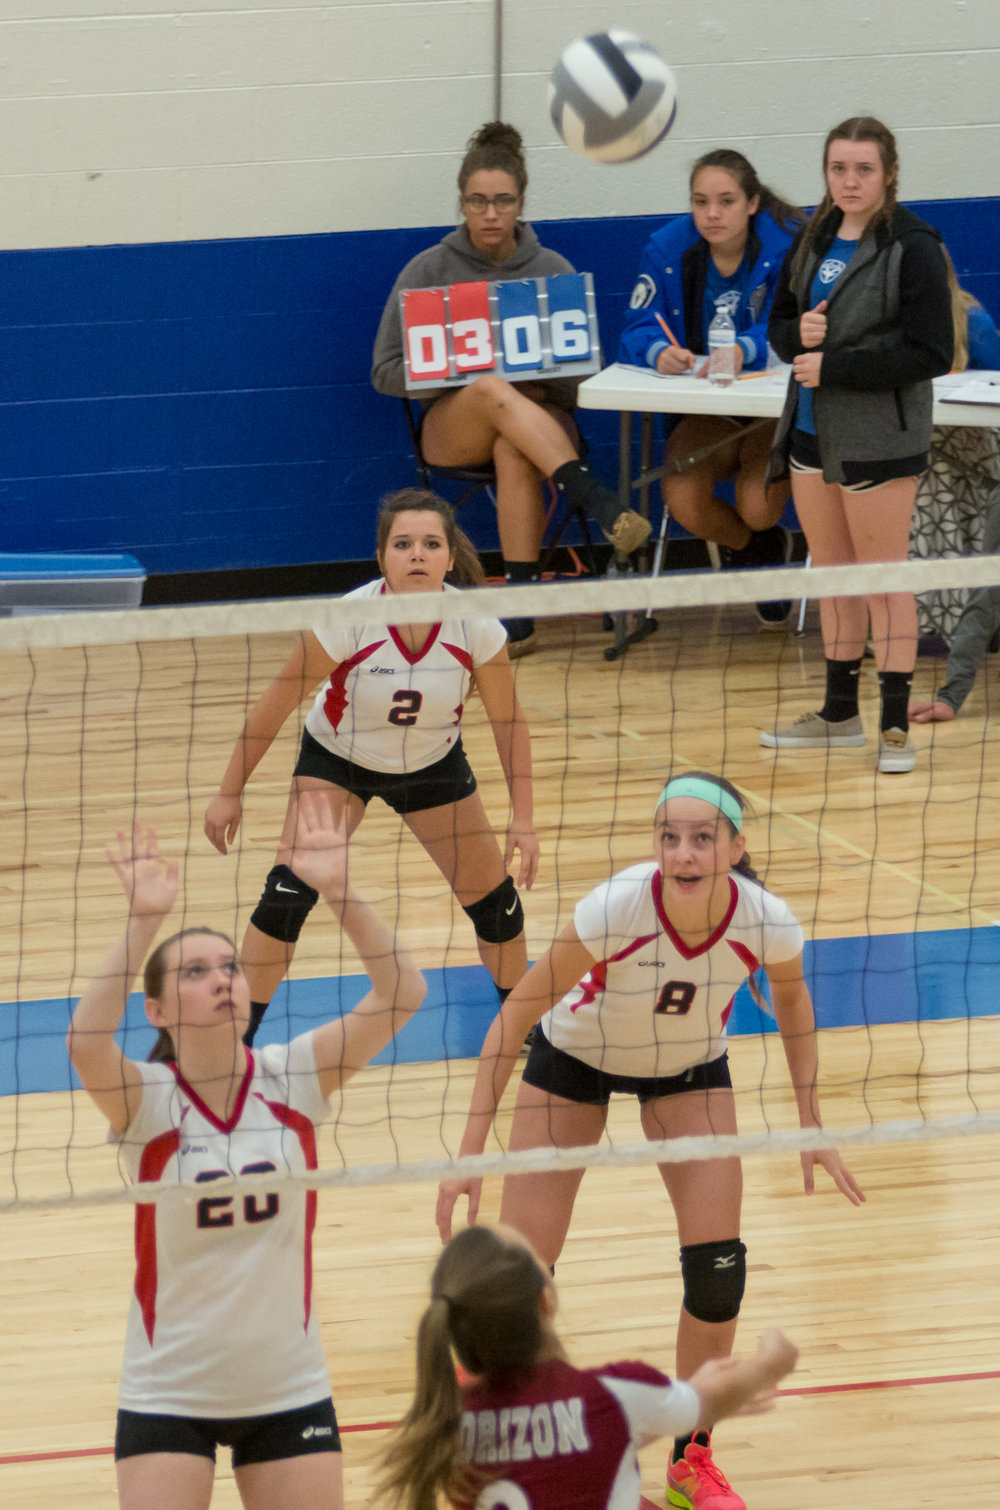 20160917-LHS Volleyball - Poudre Challenge-PMG_3208.jpg